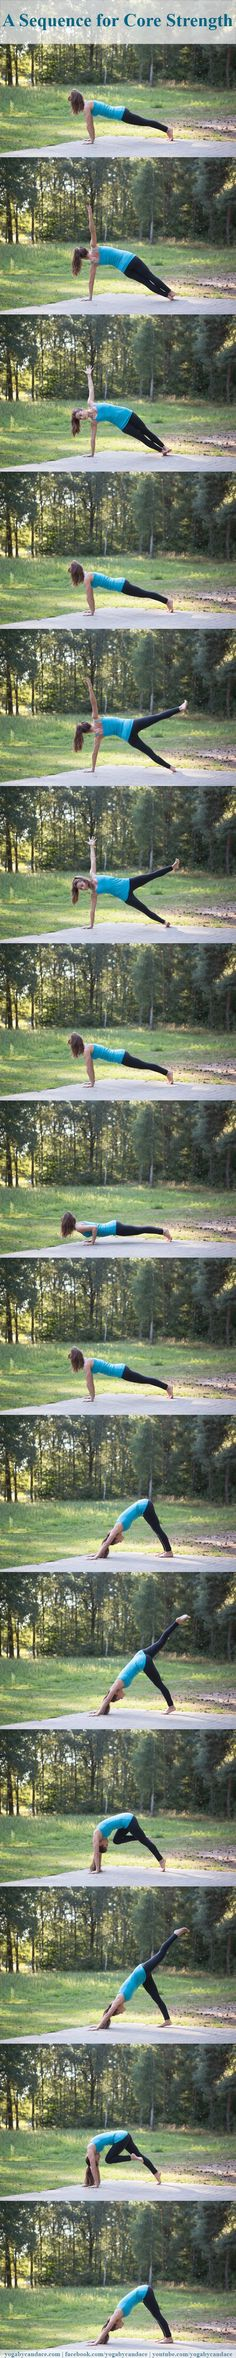 A yoga sequence for core strength you can do right from your home. Do it twice threw - 3-7 breathes each posture... definitely felt it!